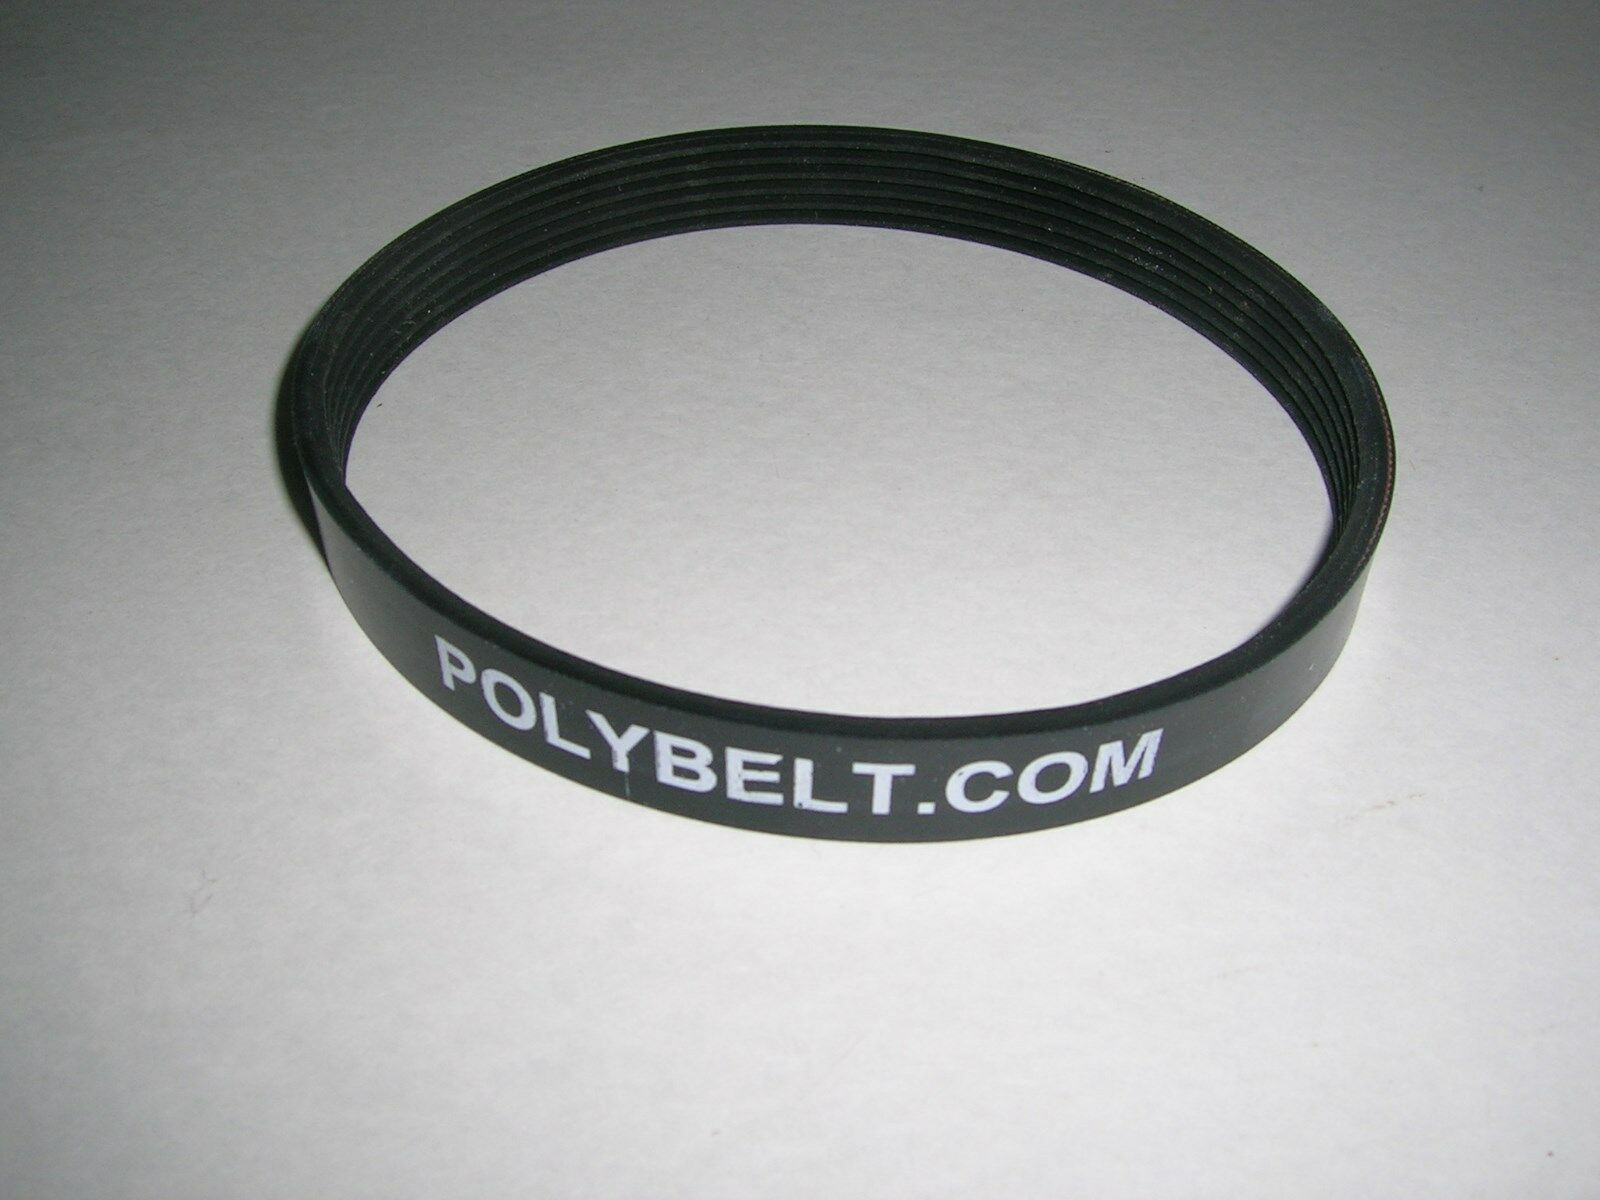 Купить Rikon 10-325 - REPLACEMENT BELT FOR RIKON 14 BAND SAW MODEL 10-325 BAND SAW USA FREE SHIPPING